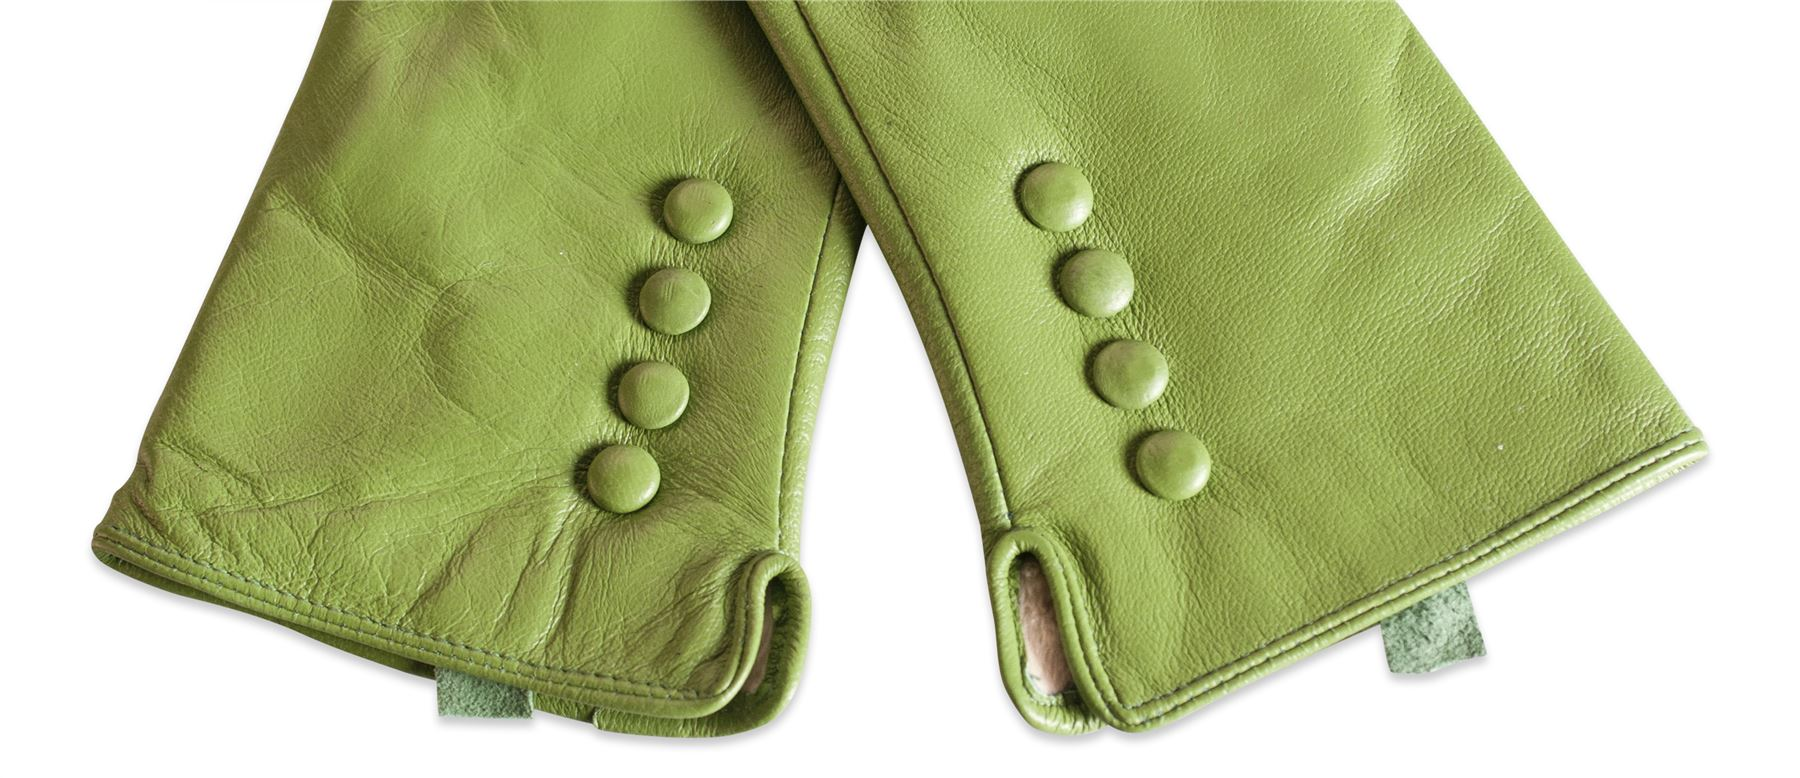 Womens leather gloves green - Quivano Womens Soft Real Leather Gloves Four Button